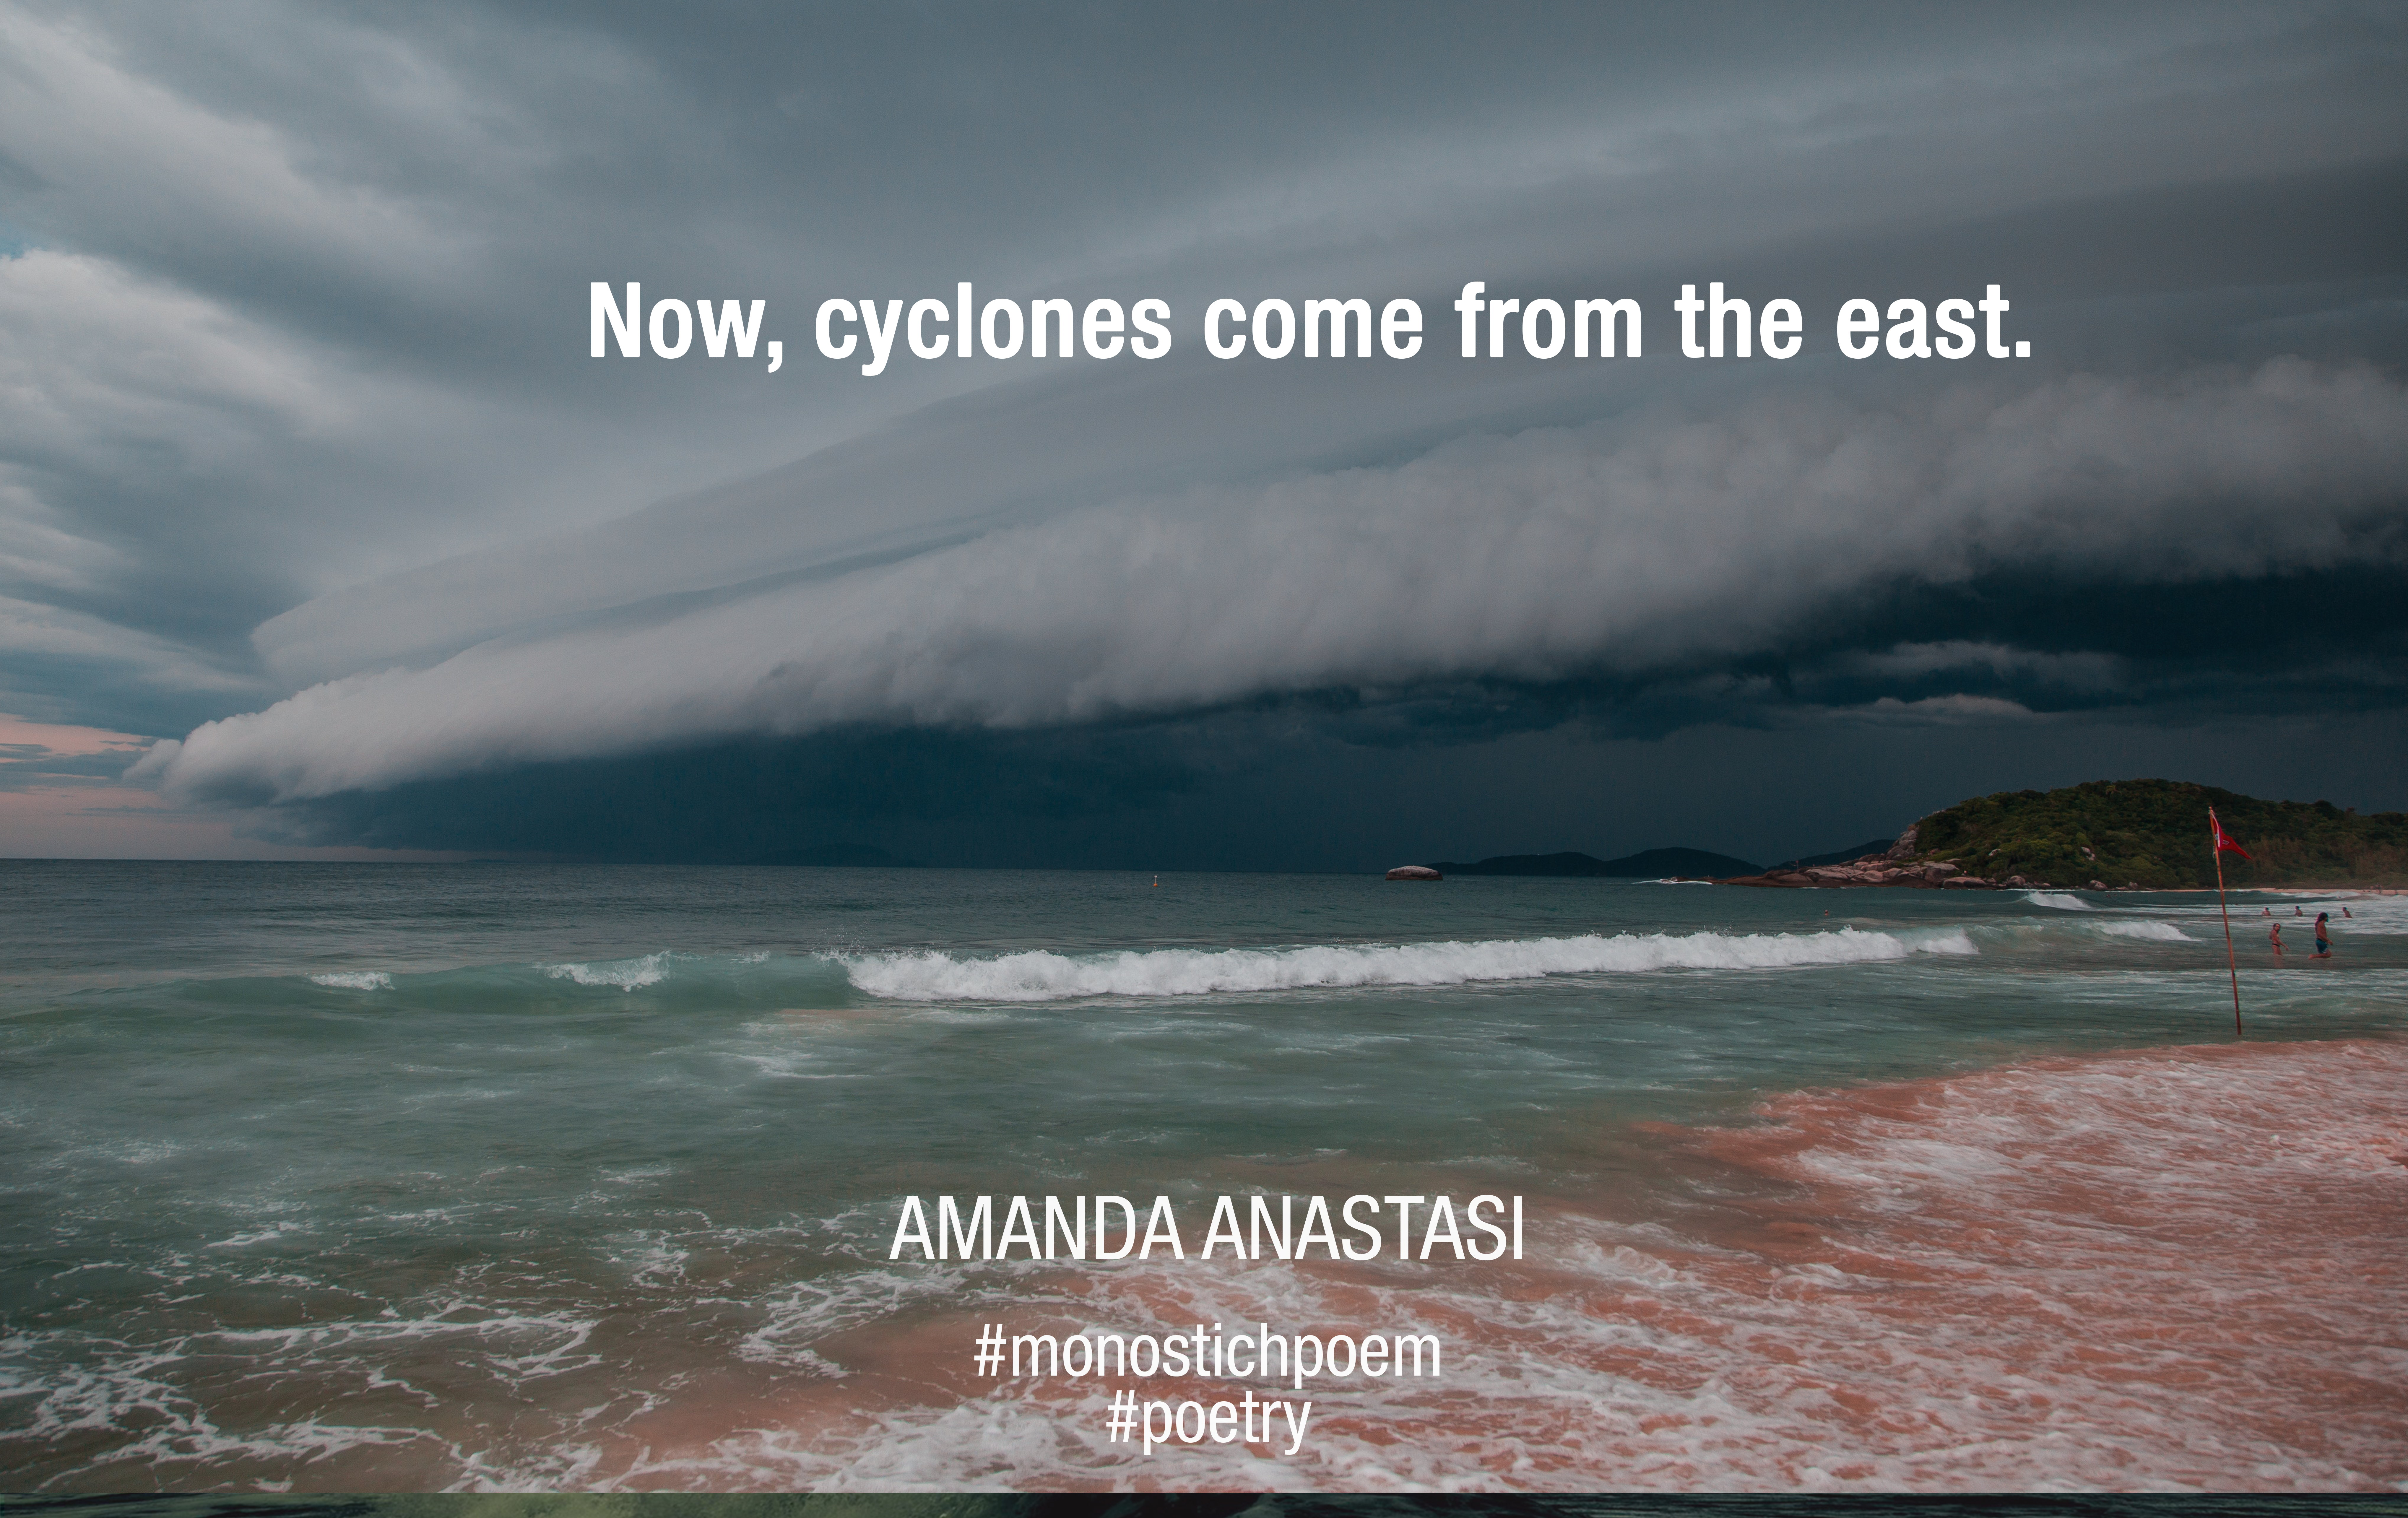 Now, cyclones come from the east.